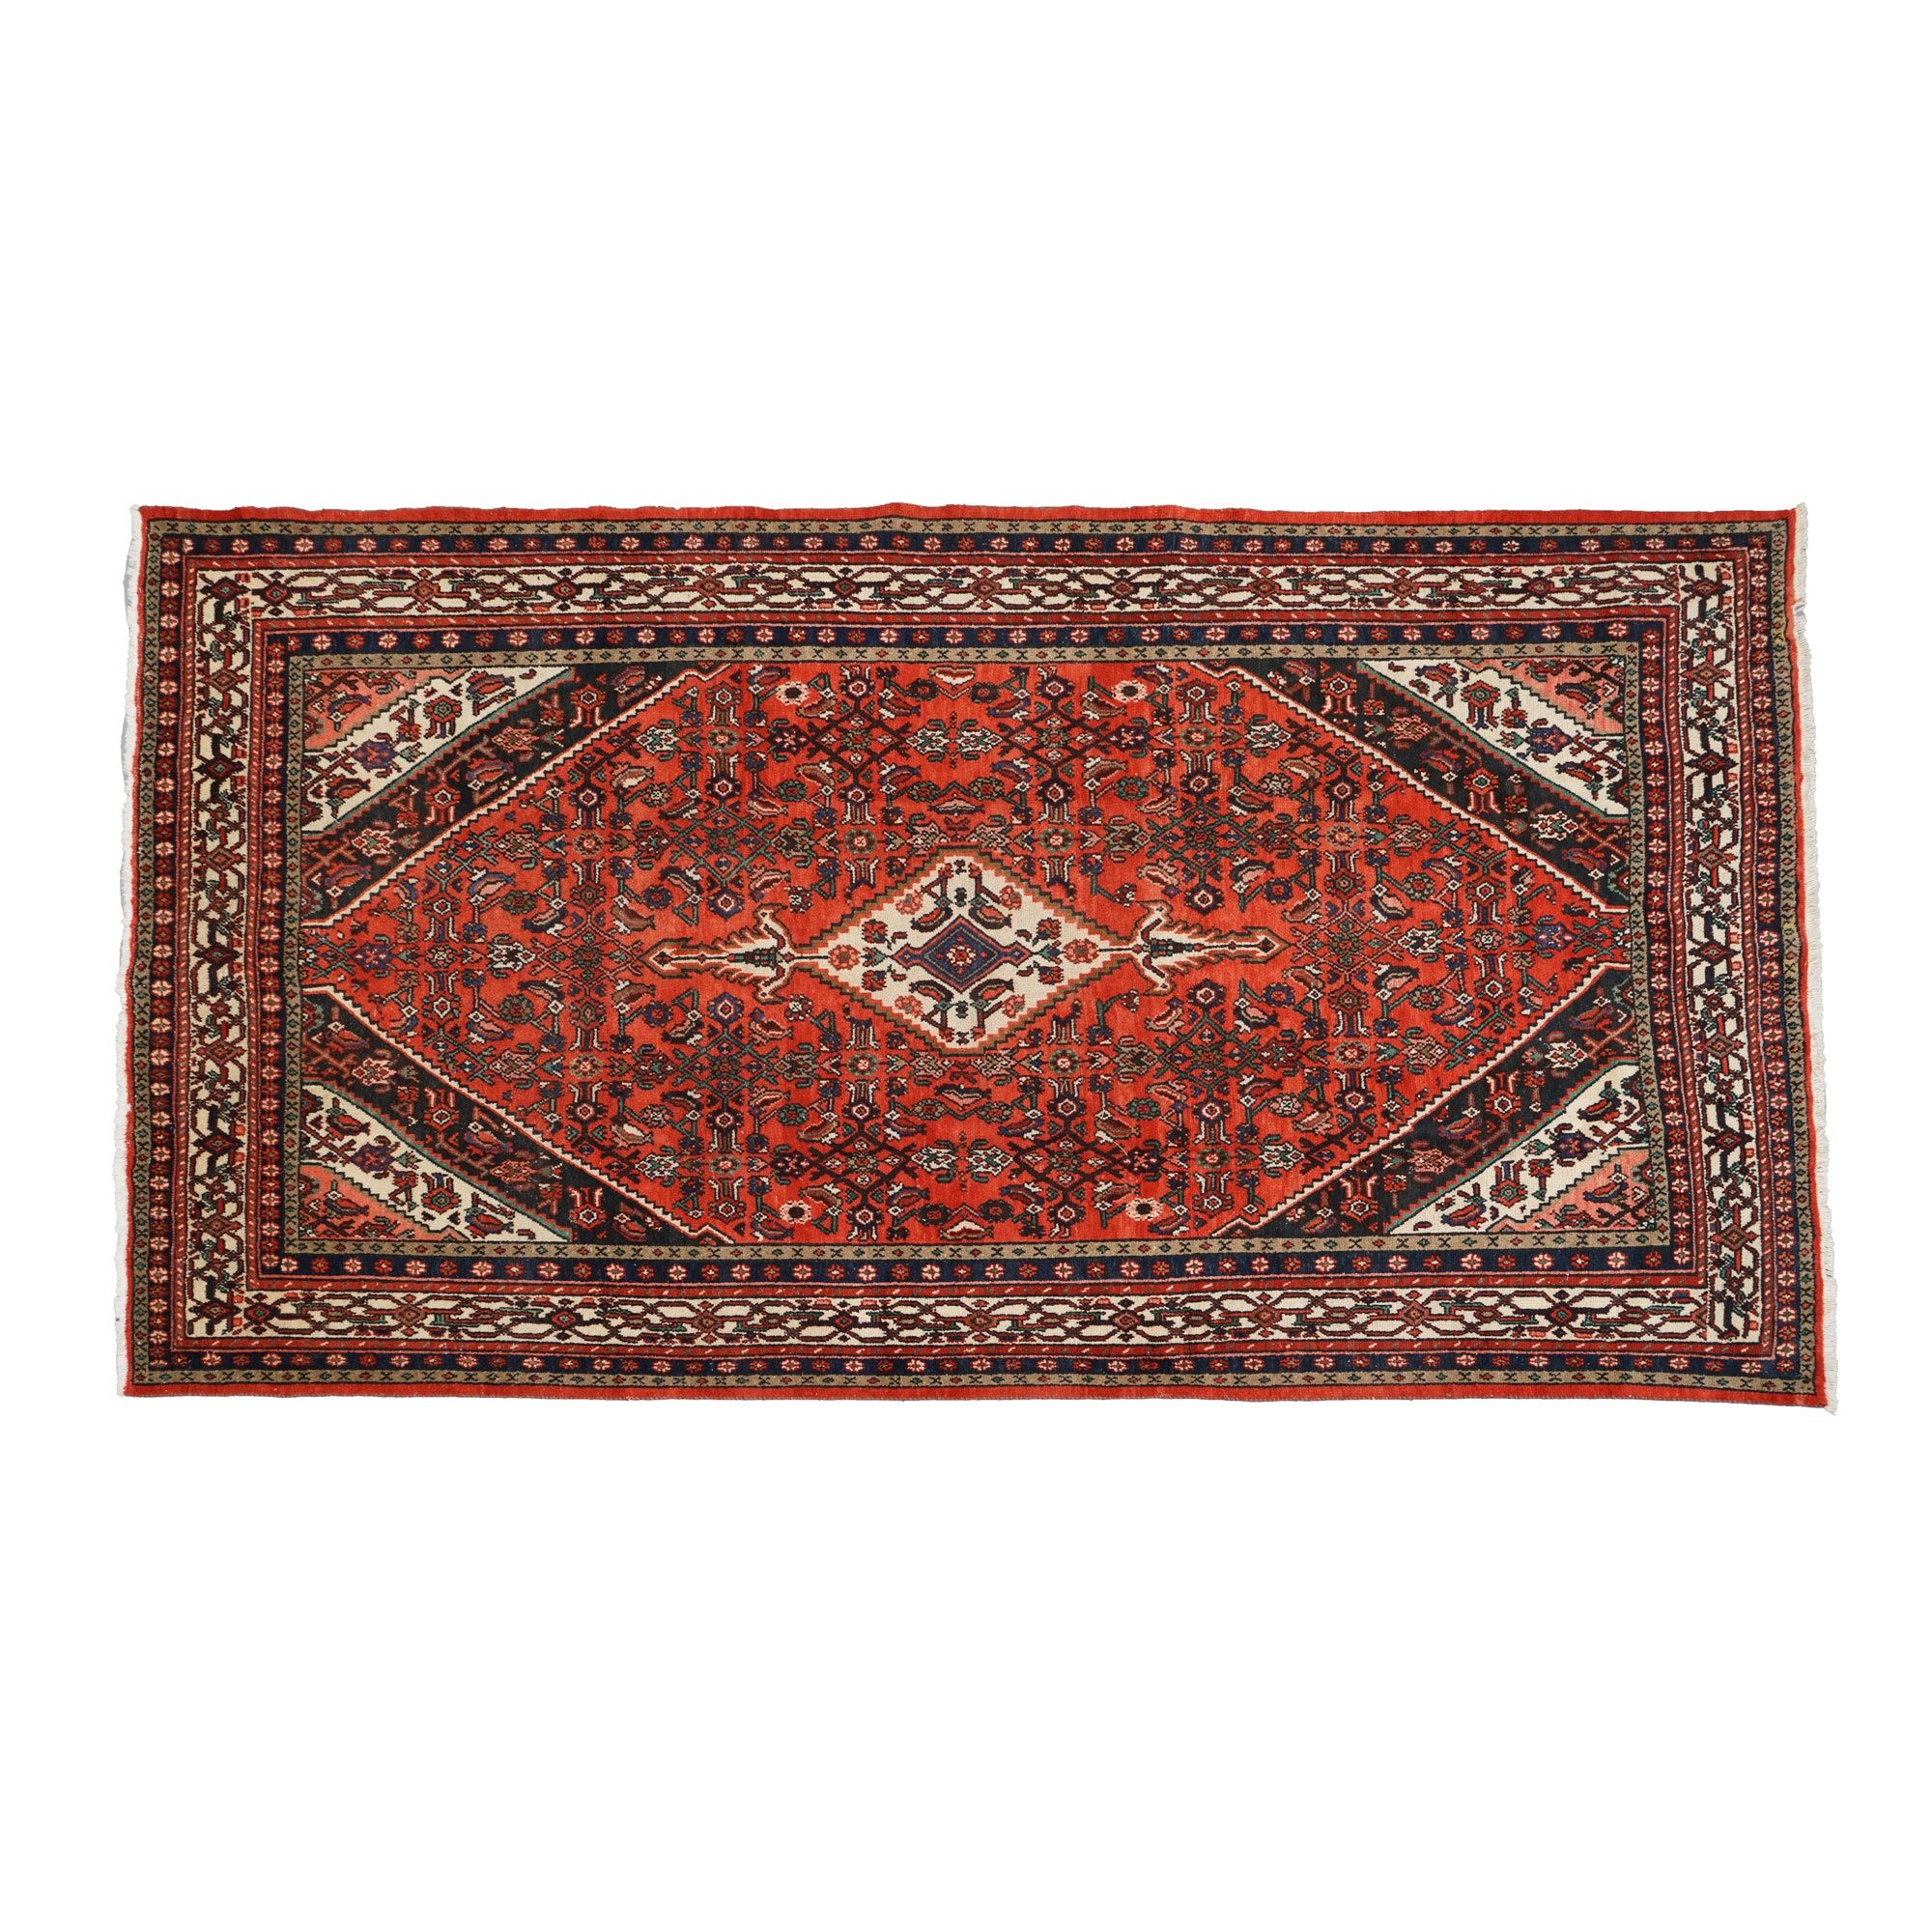 Hand-Knotted Persian Kashan Room Sized Rug